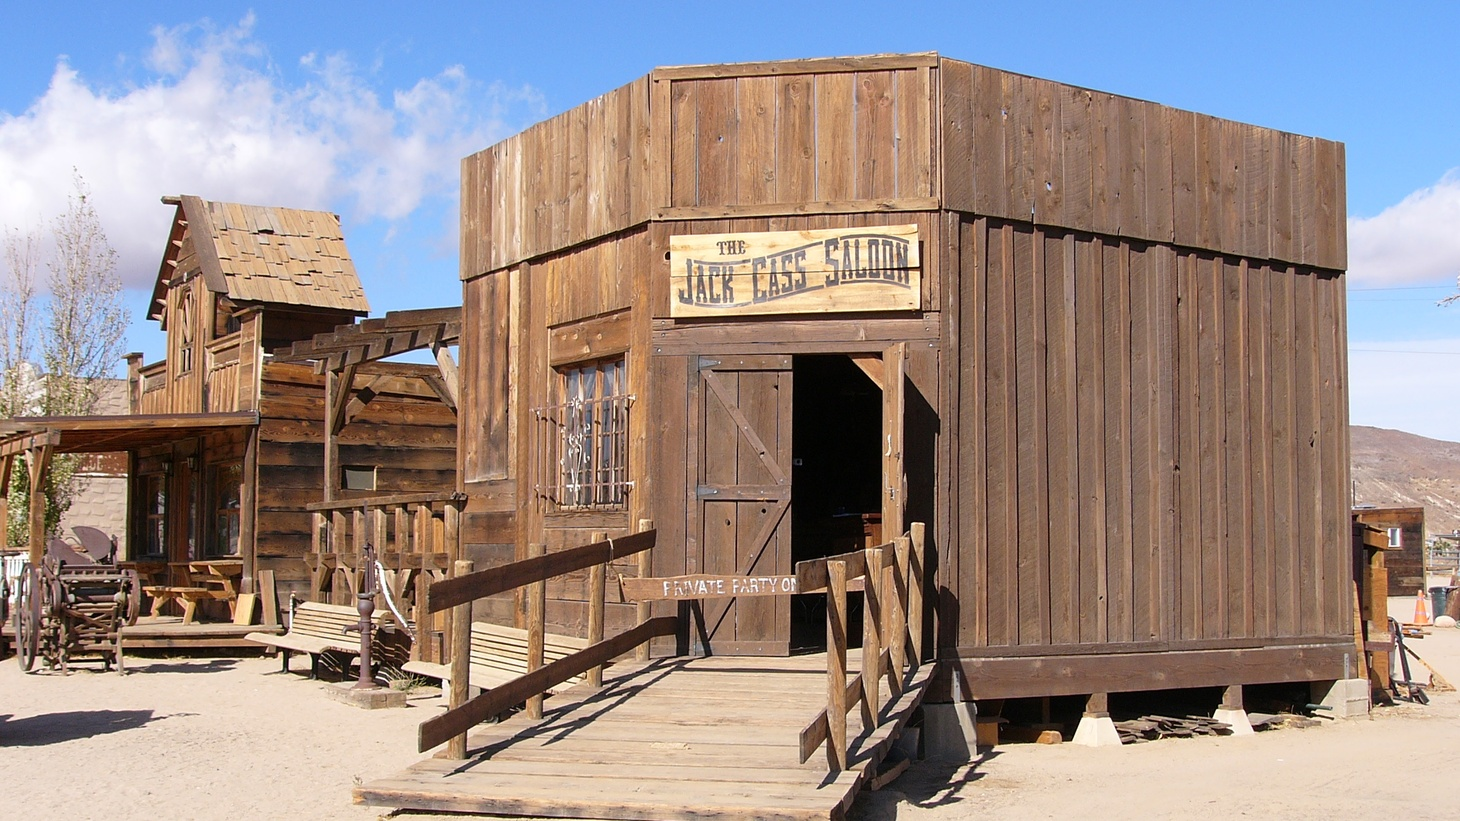 This is one of the western-style saloons you can see in Pioneertown.